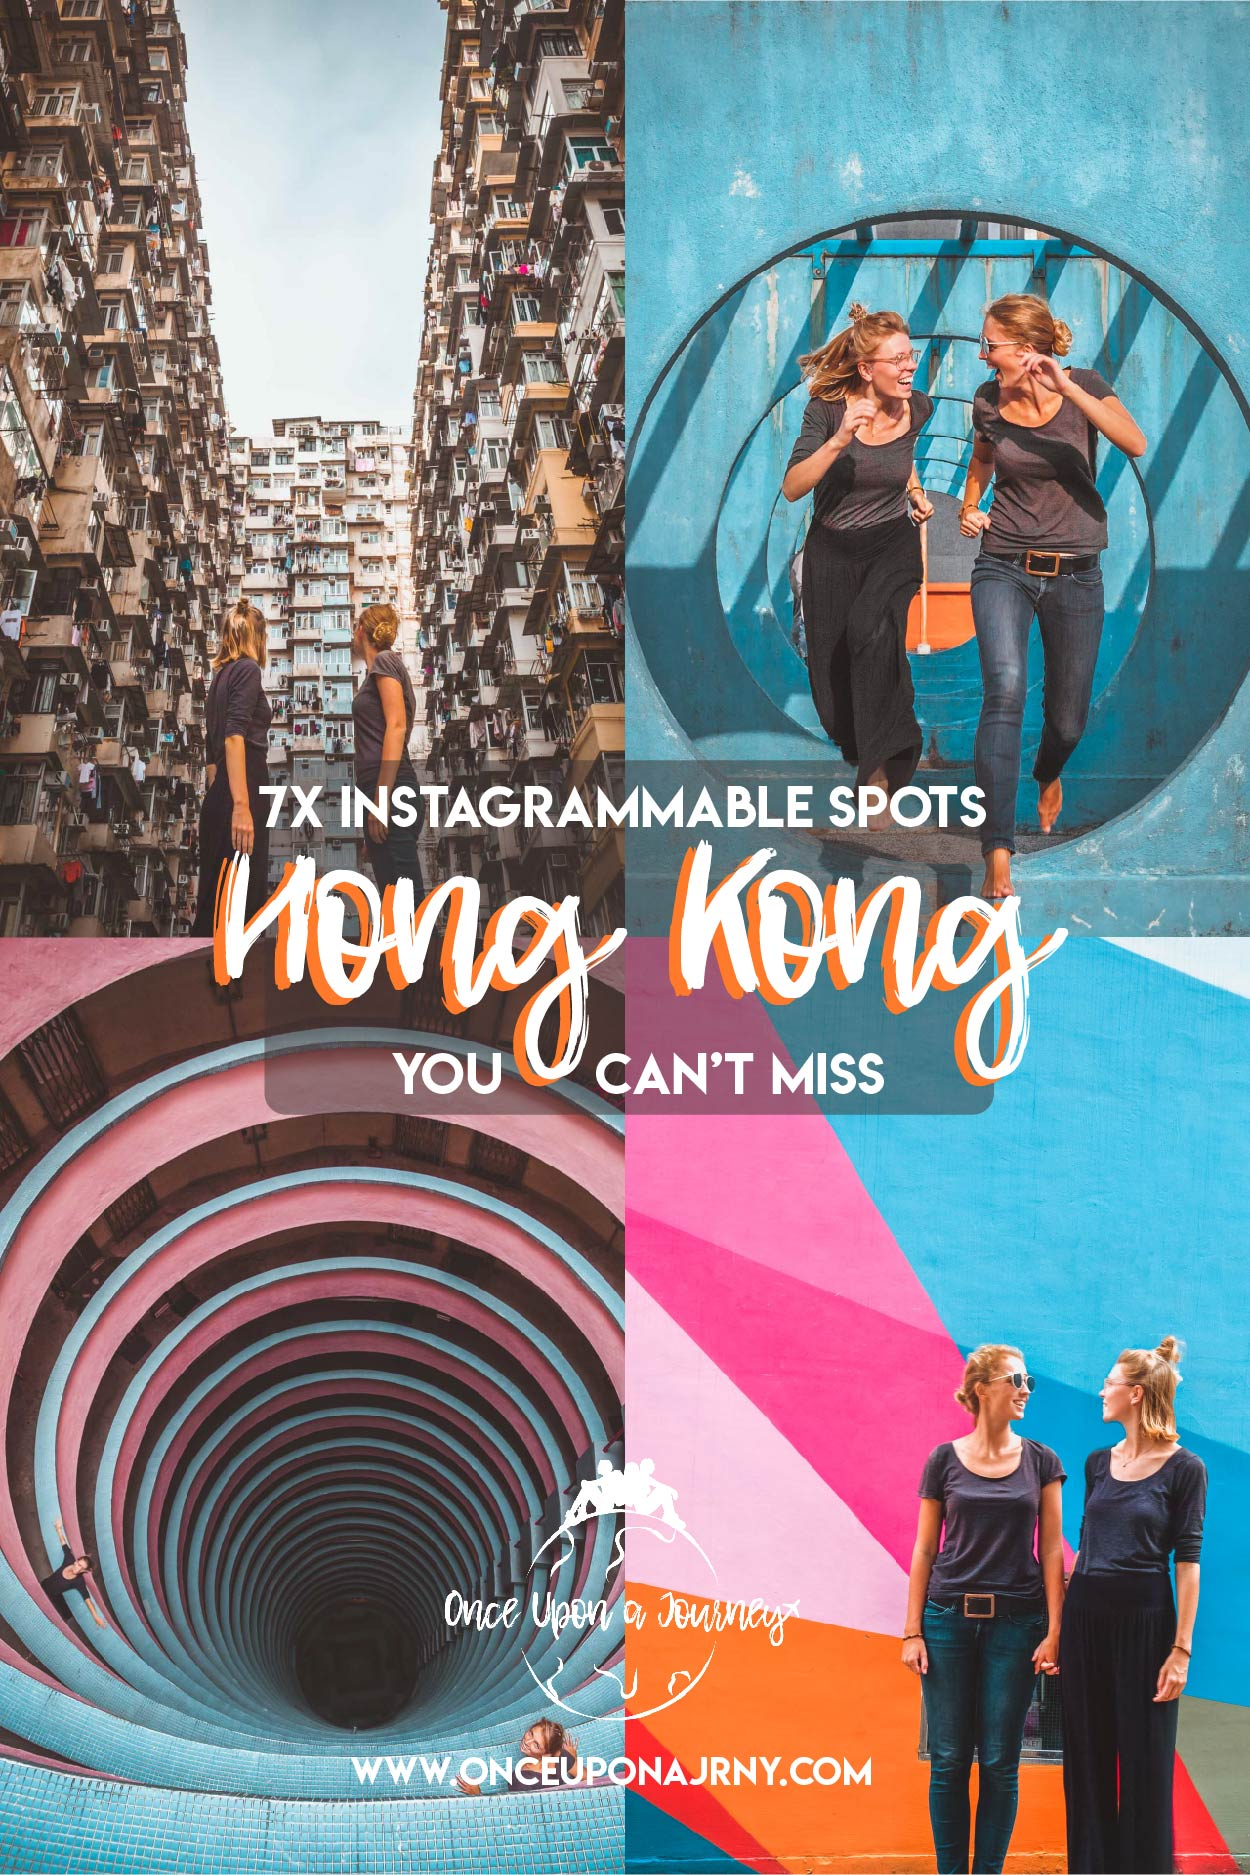 7 Instagrammable Spots You Can Absolutely Not Miss in Hong Kong | Once Upon A Journey LGBT Travel Blog #lesbiantravel #hongkong #instagram #asia #hotspots